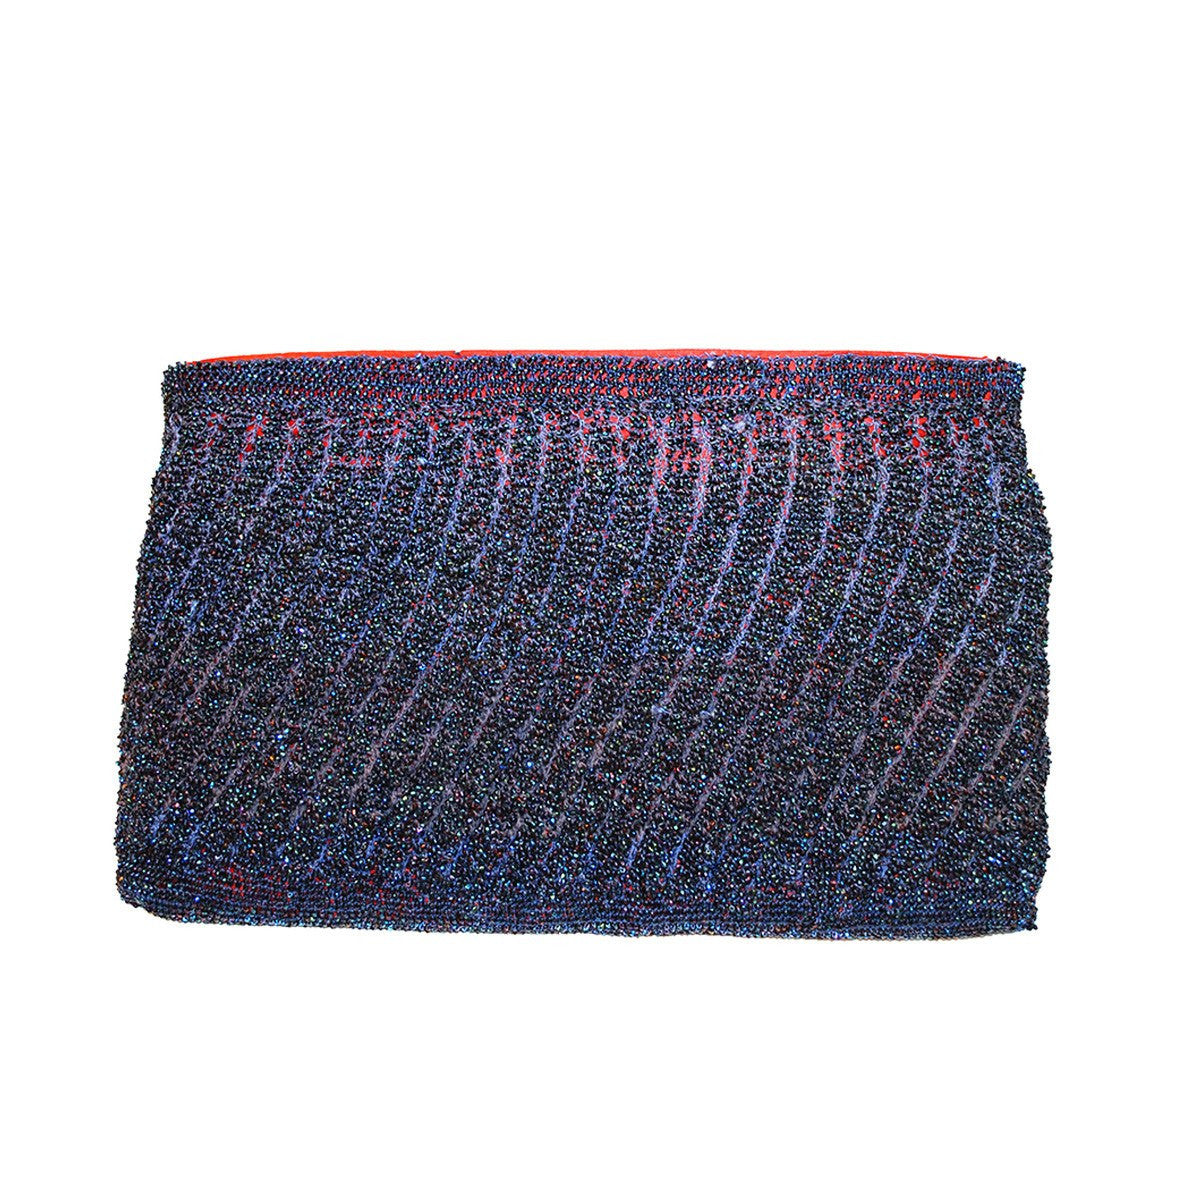 1960s Beaded Evening Clutch 3, Dark Blue Beads, Red Satin Lining